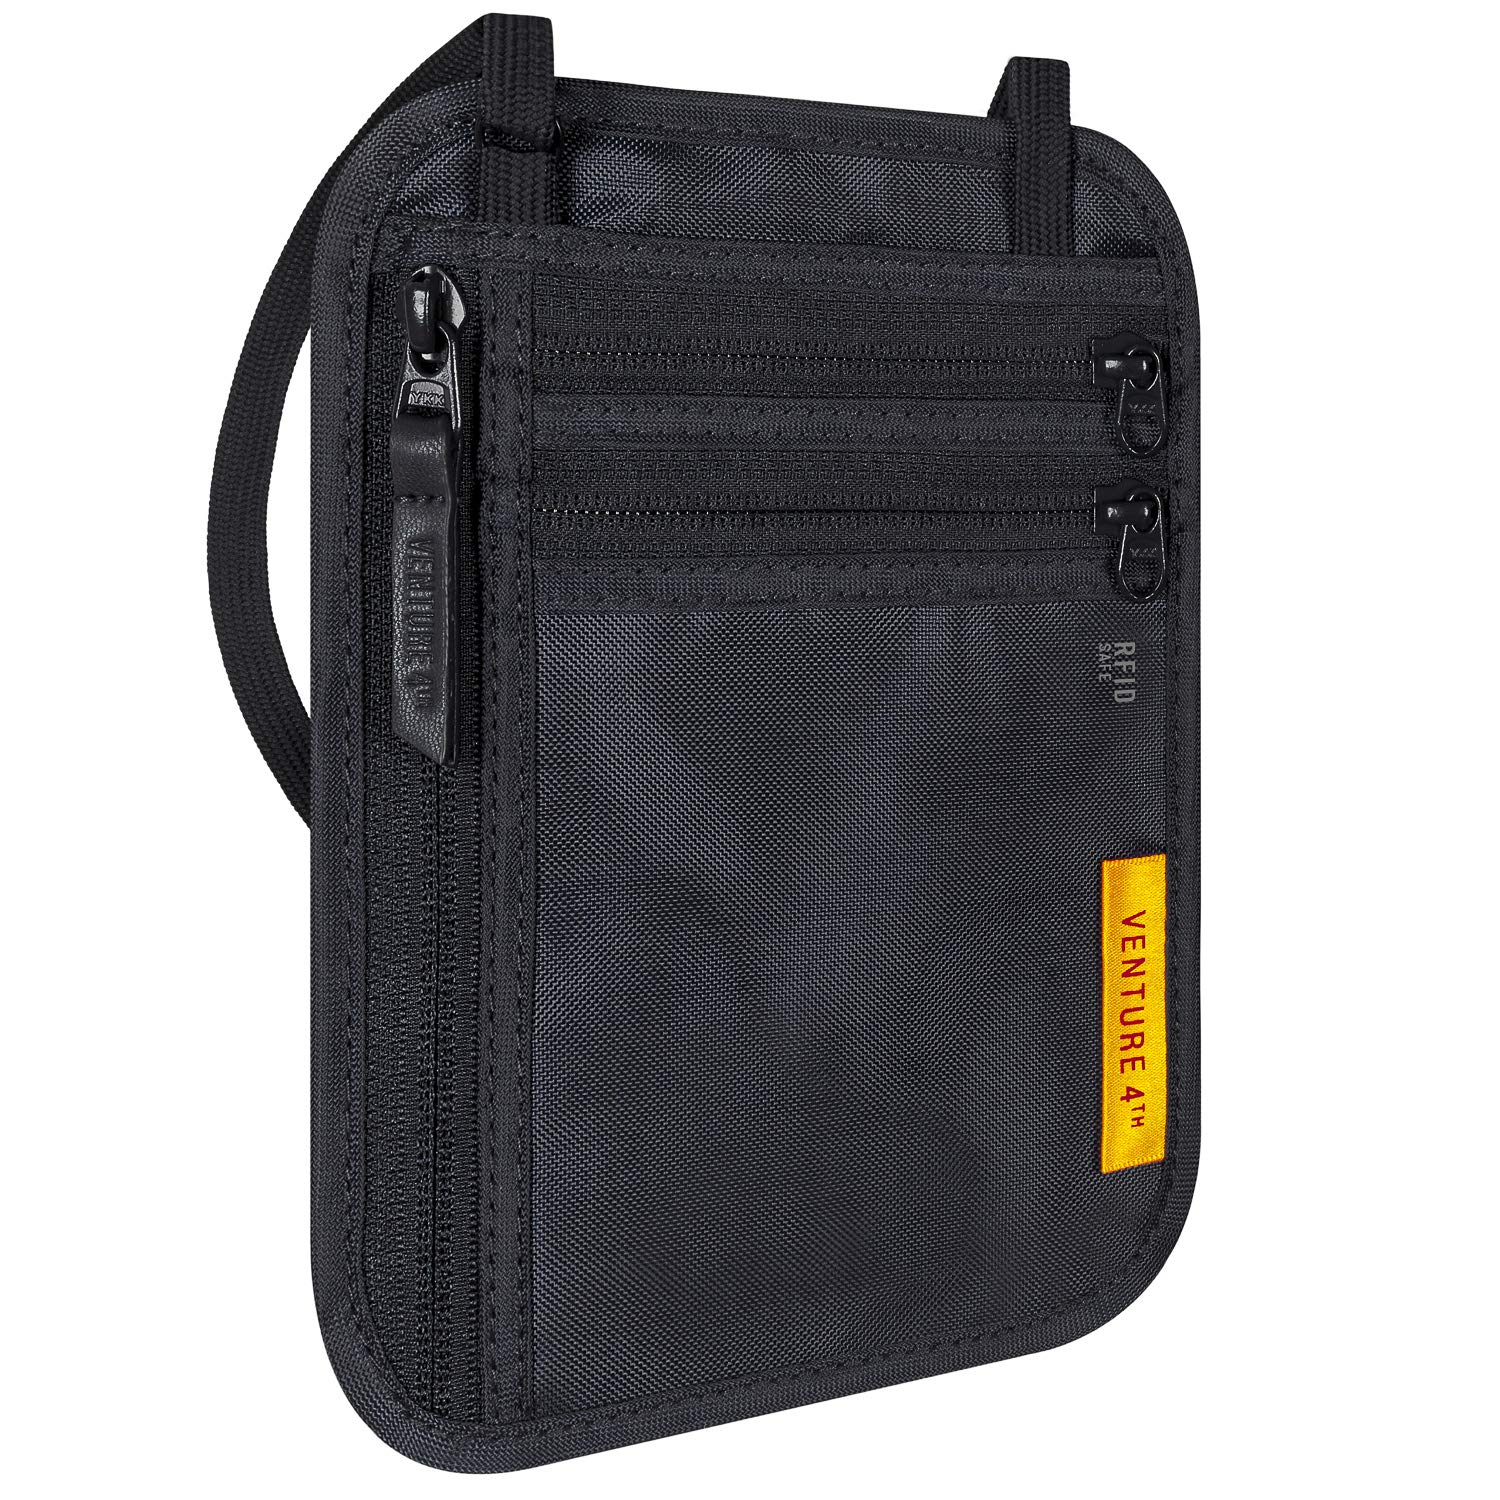 VENTURE 4TH Travel Wallet | RFID Passport Holder | Security Neck Pouch (Black)